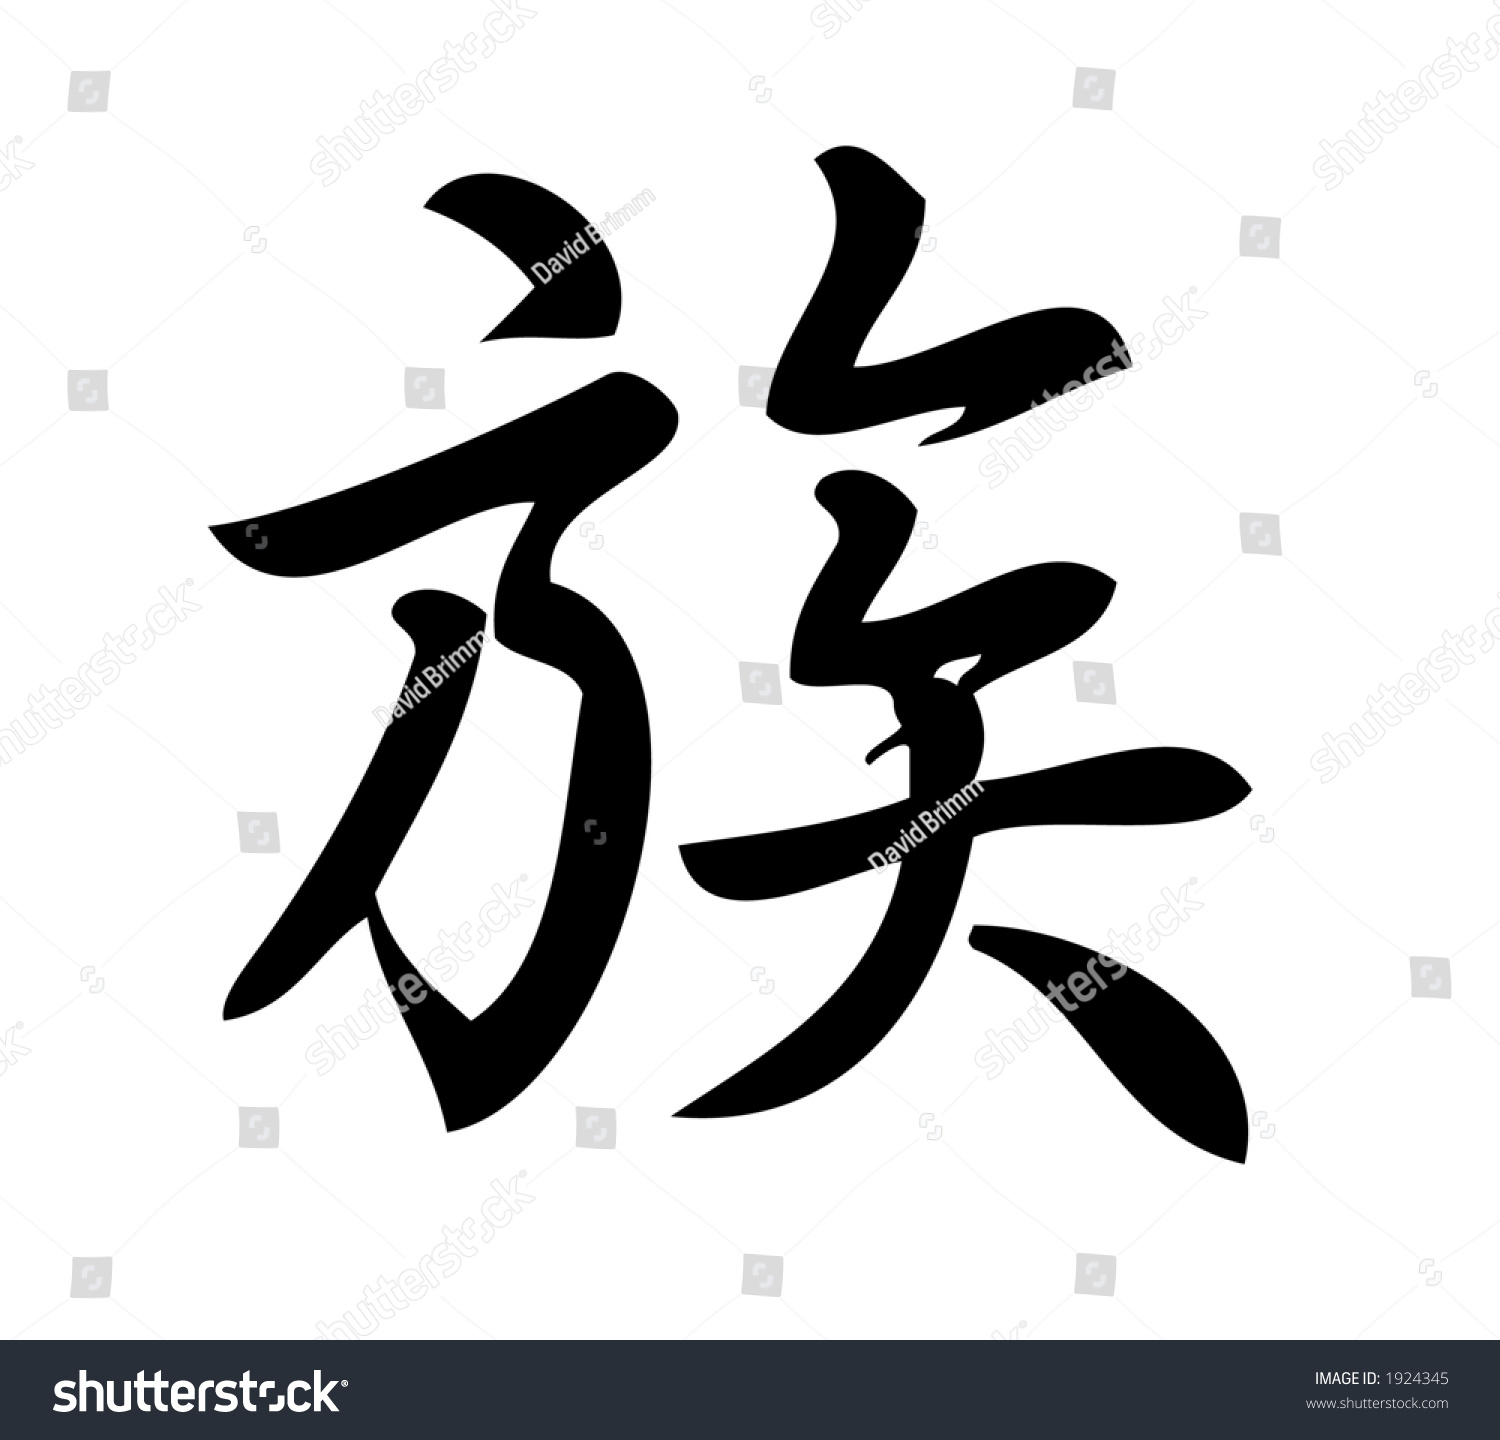 Kanji character family tribe relatives kanji stock illustration kanji character for family tribe relatives kanji one of three scripts biocorpaavc